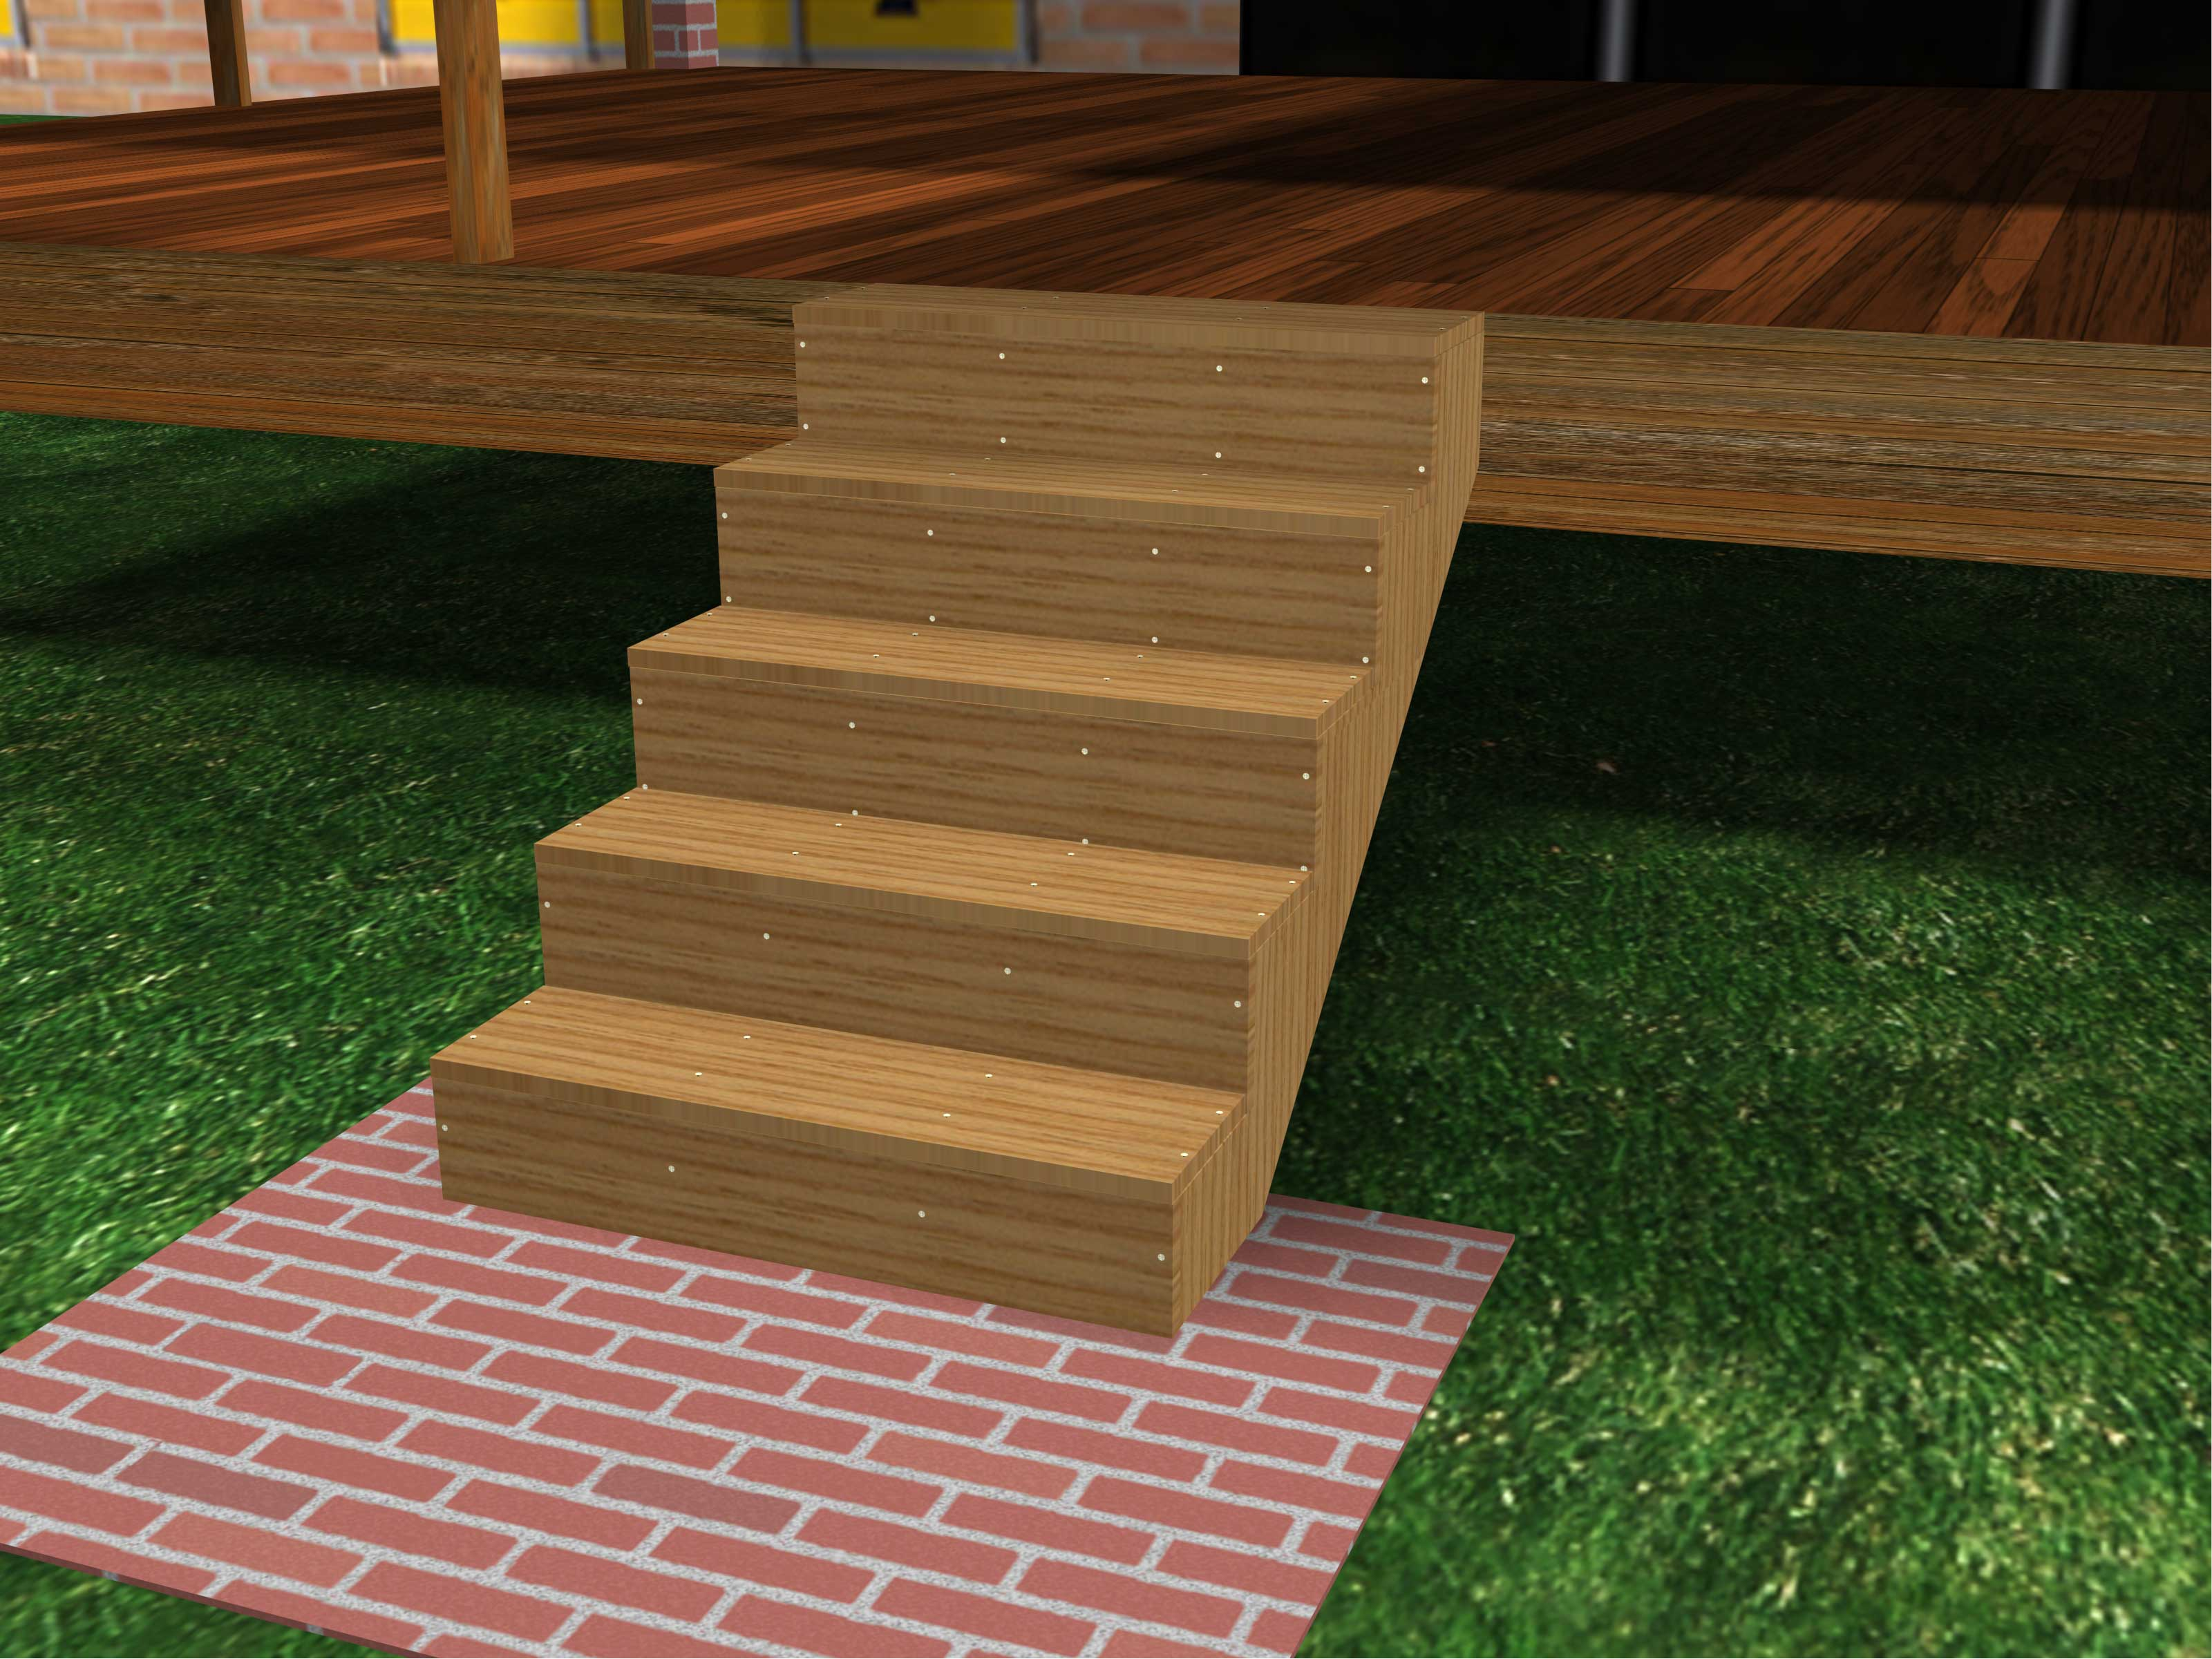 Wooden Steps How To Build Porch Steps 13 Steps With Pictures Wikihow